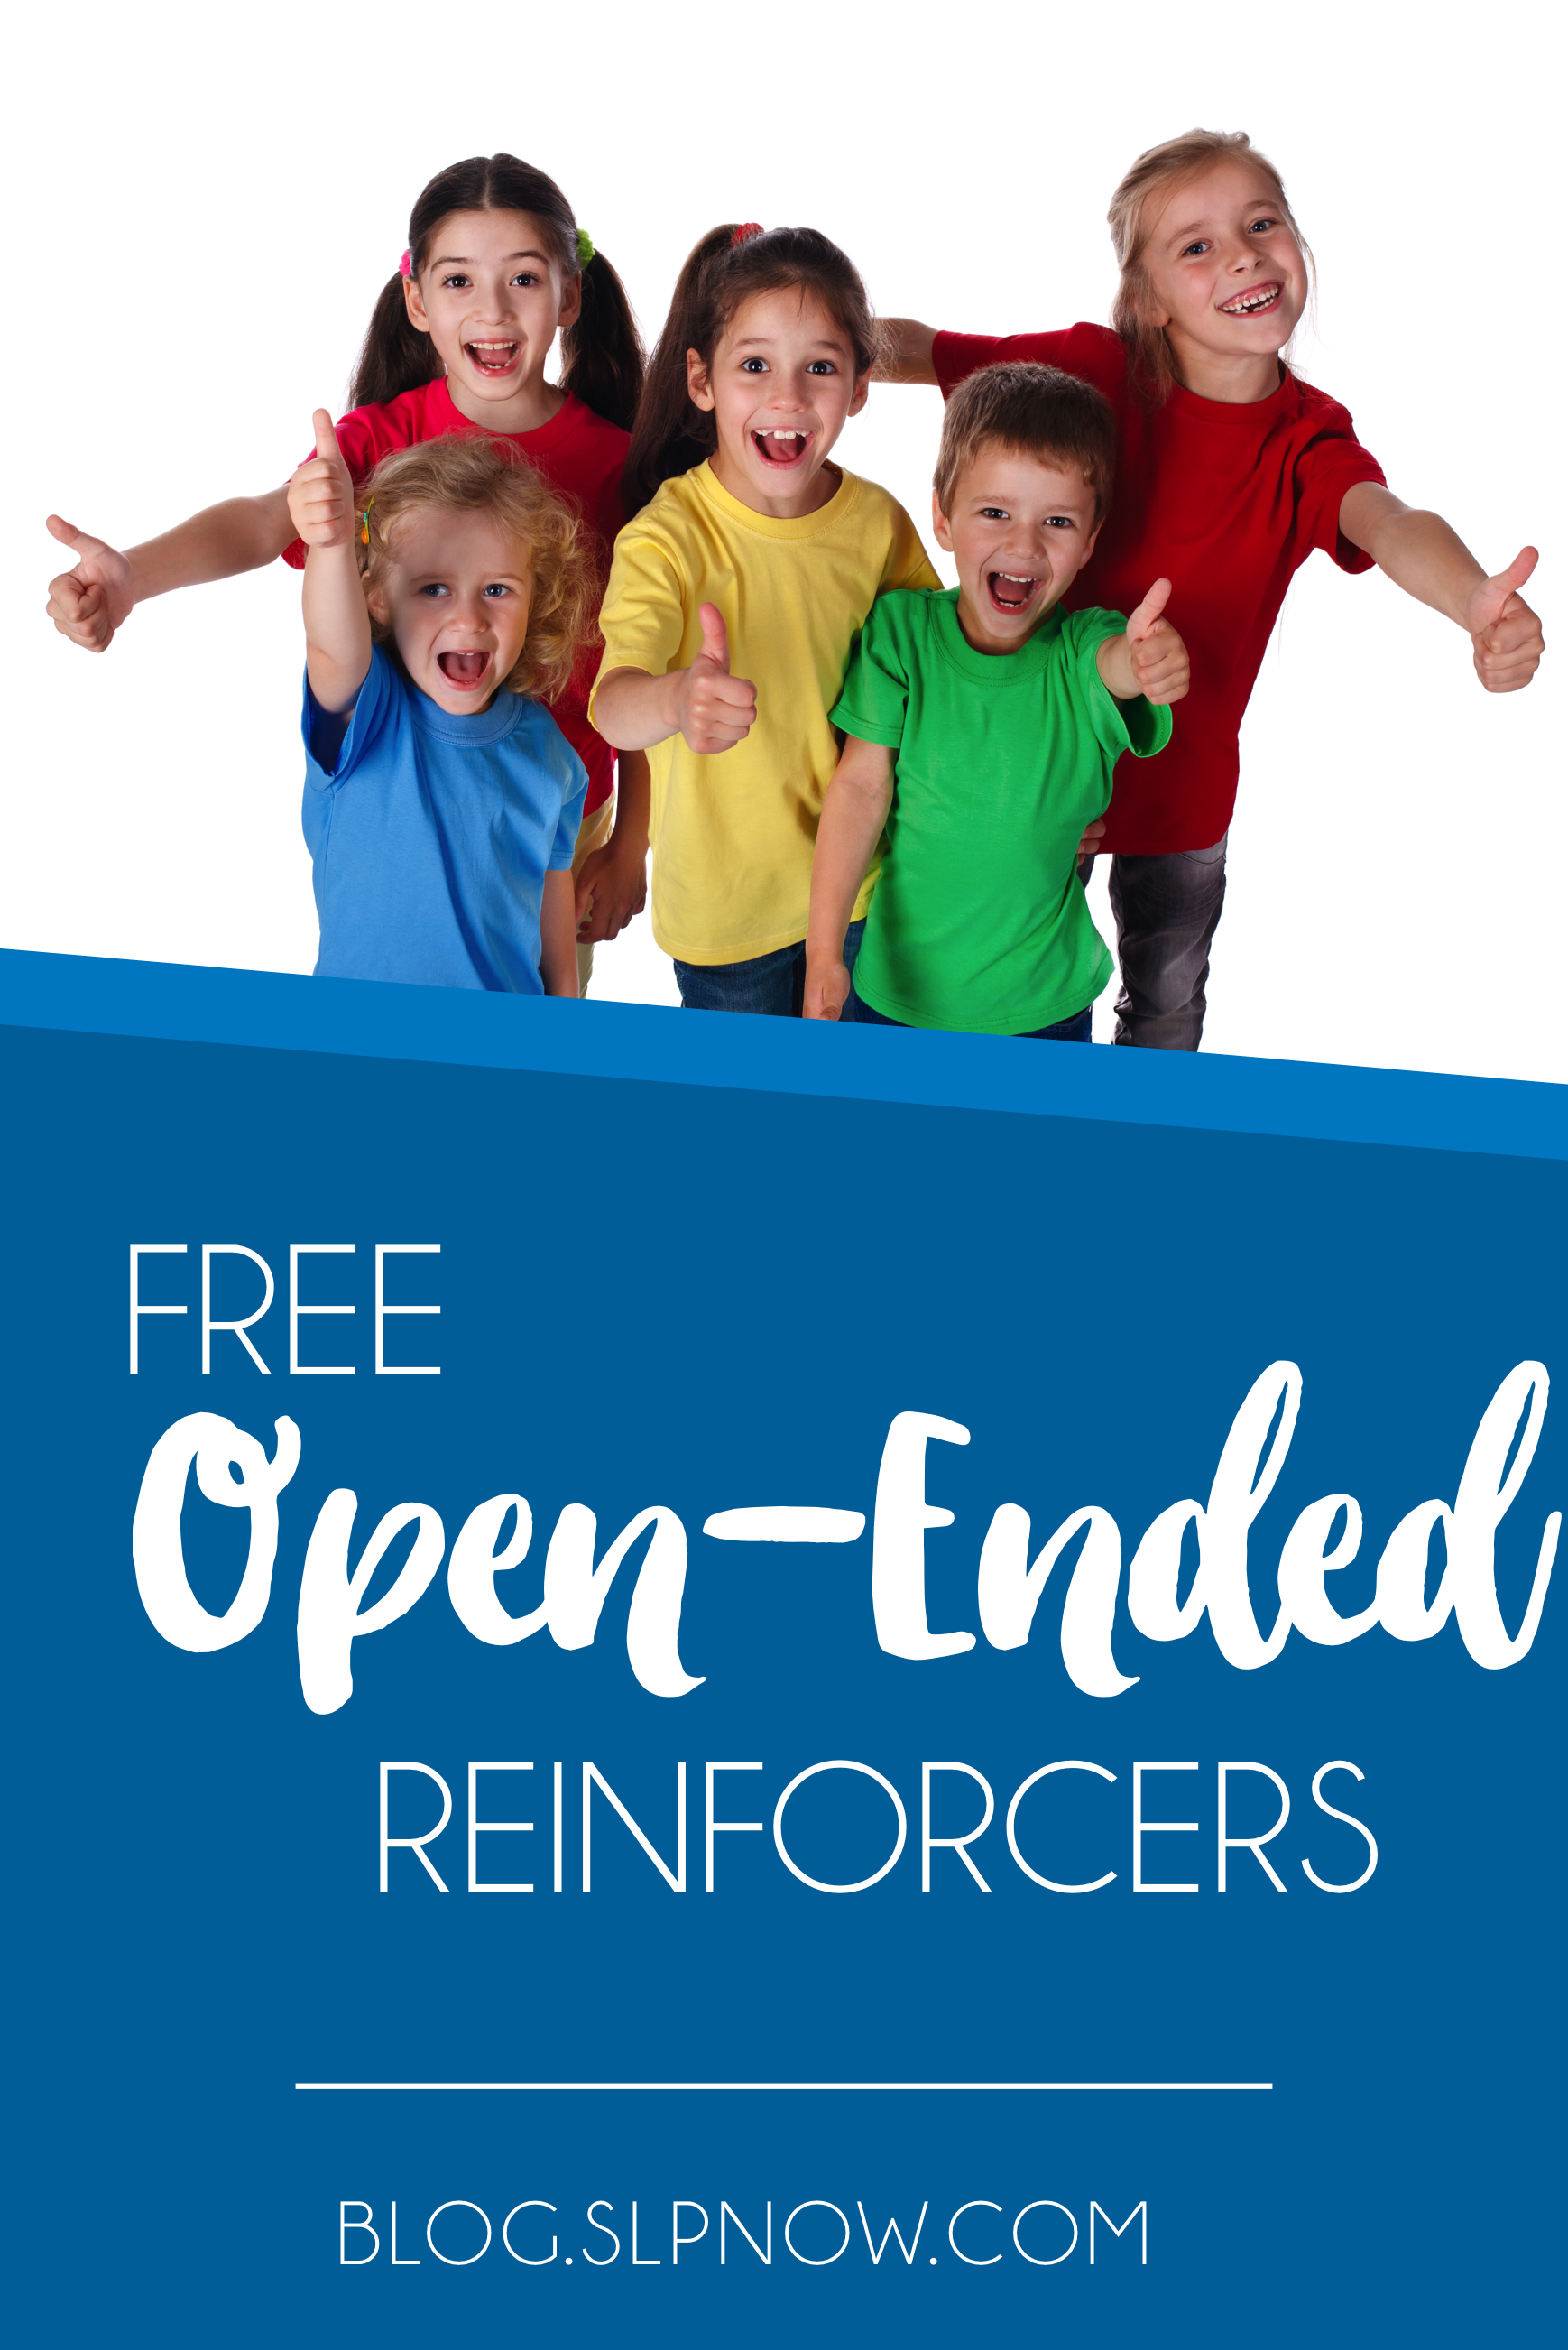 Looking for some quick seasonal reinforcers? Check out this round-up of FREE resources!